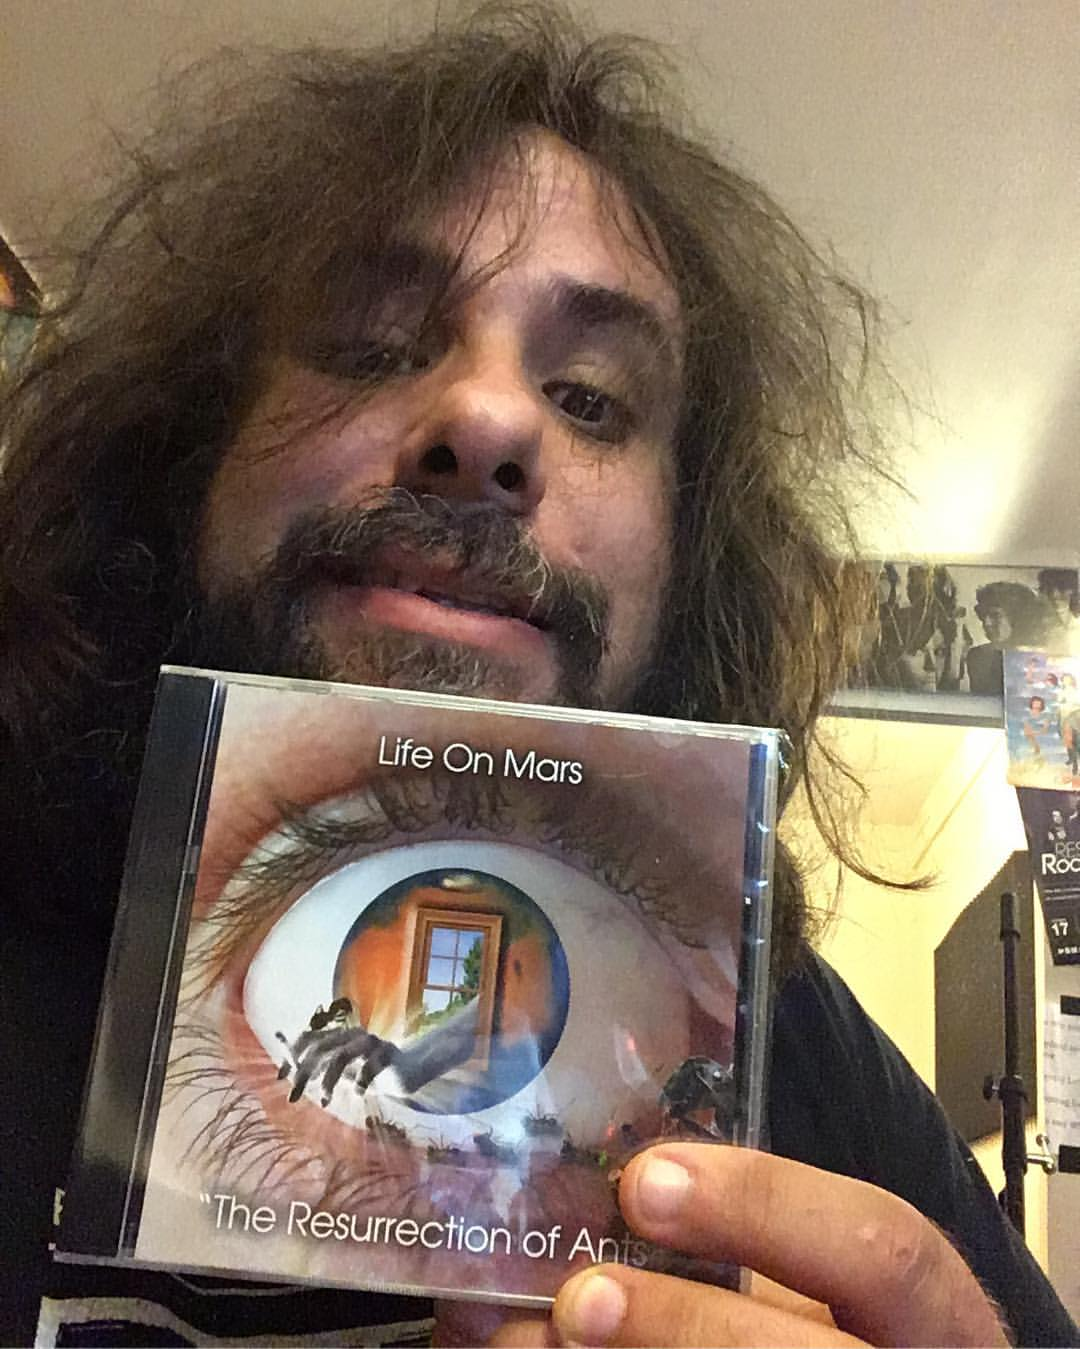 "Fernando Perdomo - Mailman brought me my own copy of "" The Resurrection of Ants "" by Life On Mars. Very proud of this record!"